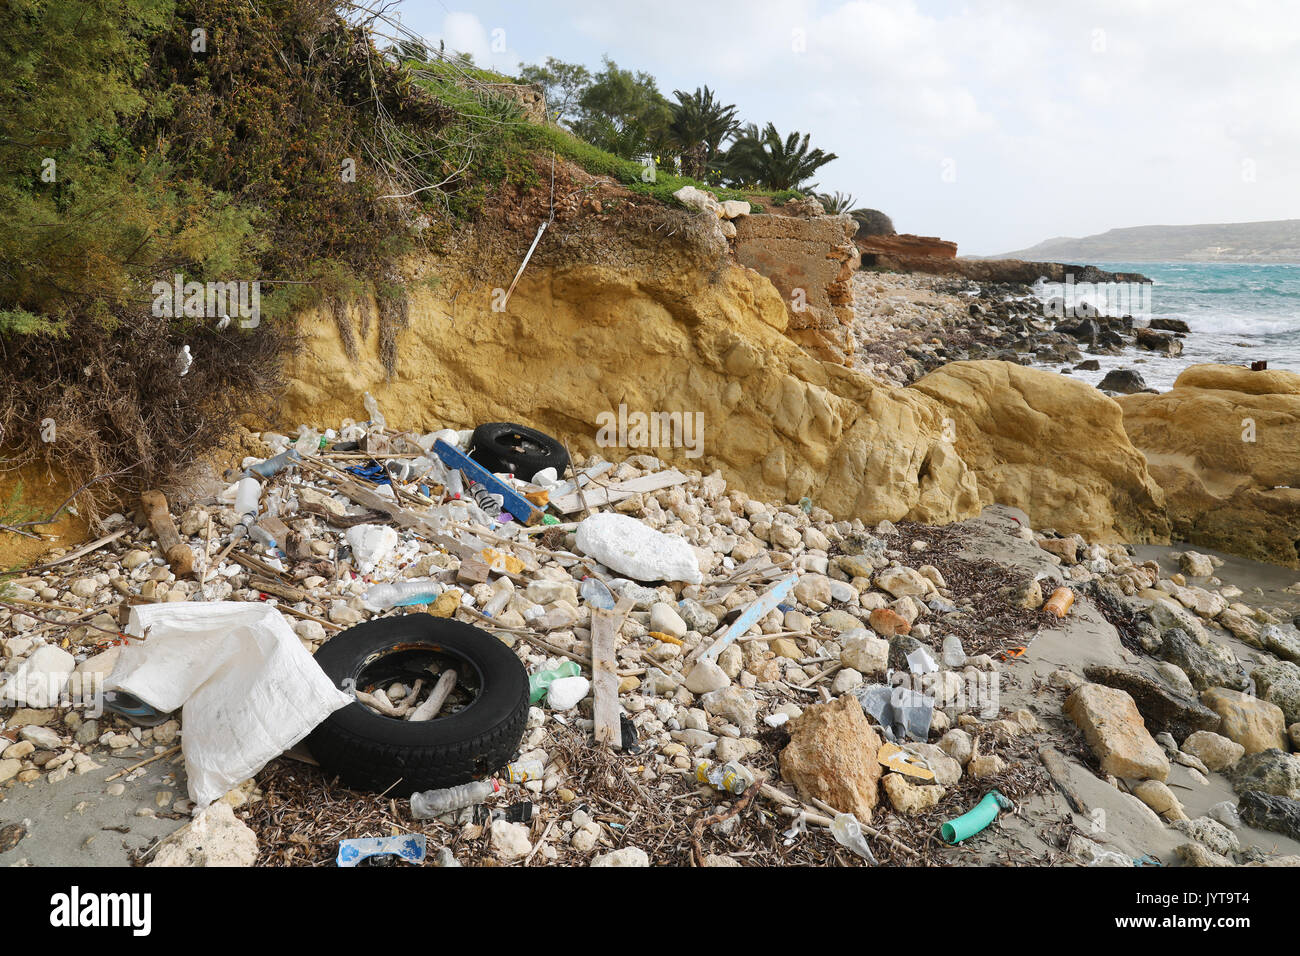 Litter and discarded old tires on the sea shore in Malta - Stock Image